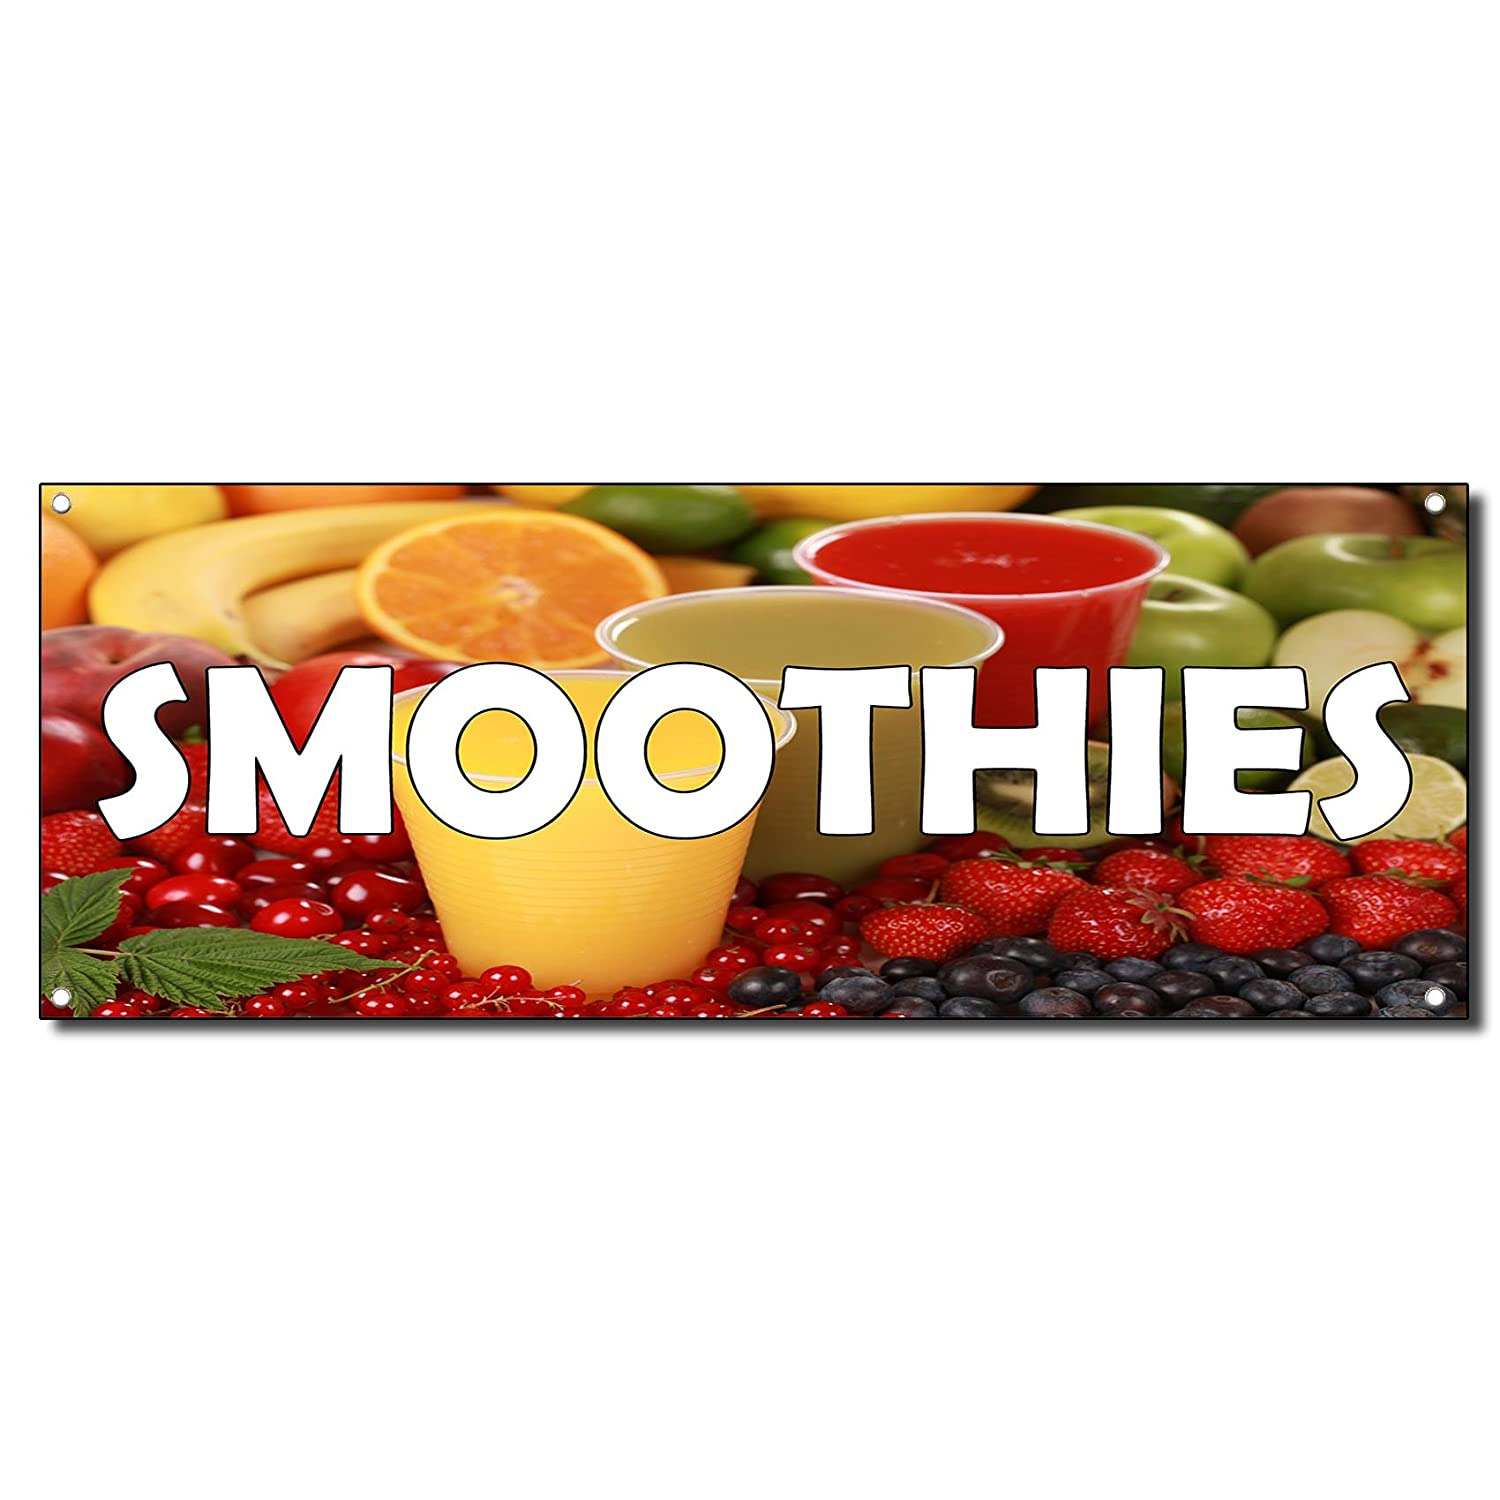 Smoothies with Fruit Images 13 Oz Vinyl Banner Sign 2 Ft X 4 Ft//W 4 Grommets